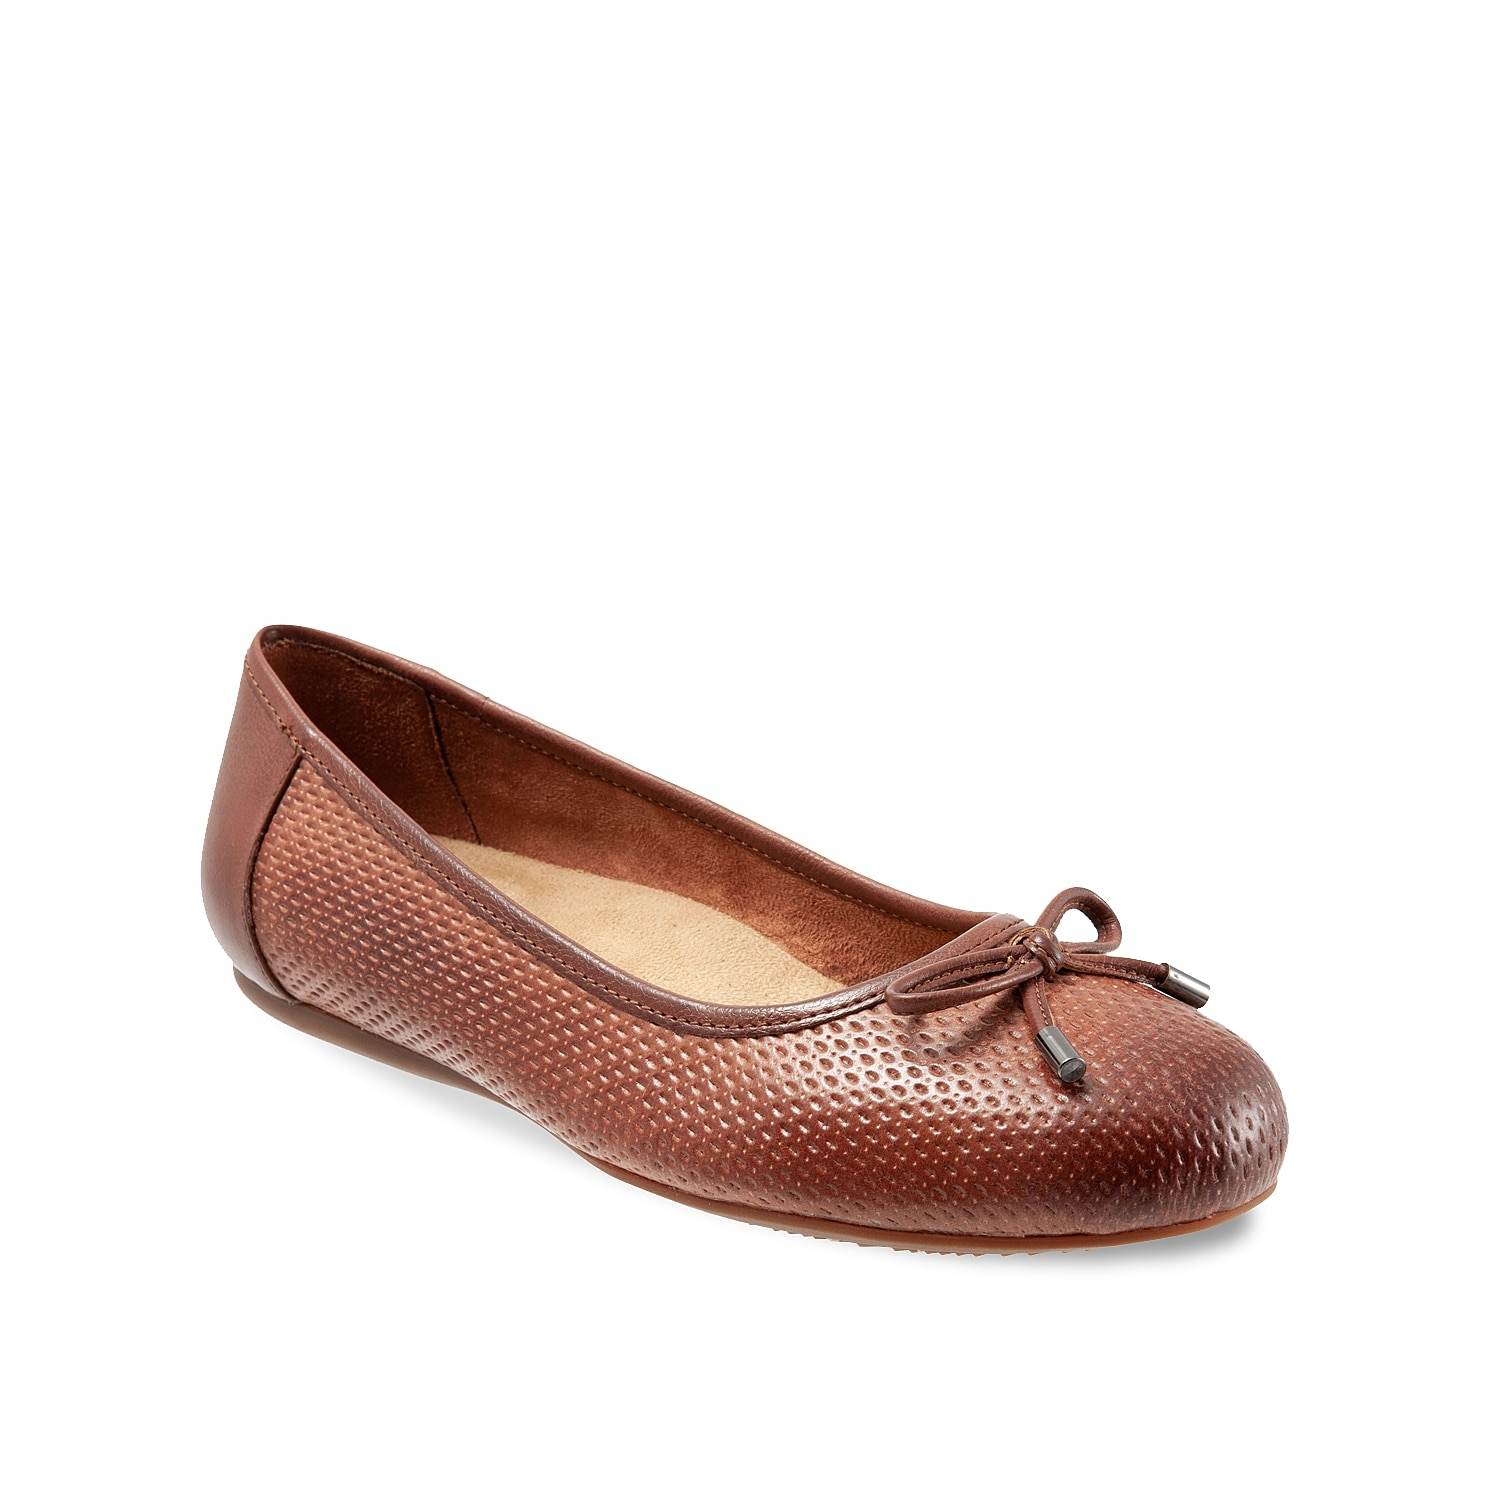 Get the support you need with the Napa ballet flat from Softwalk. A plush footbed with arch support will keep you comfortable as the perforated detailing and bow accent will add charming style to any outfit.